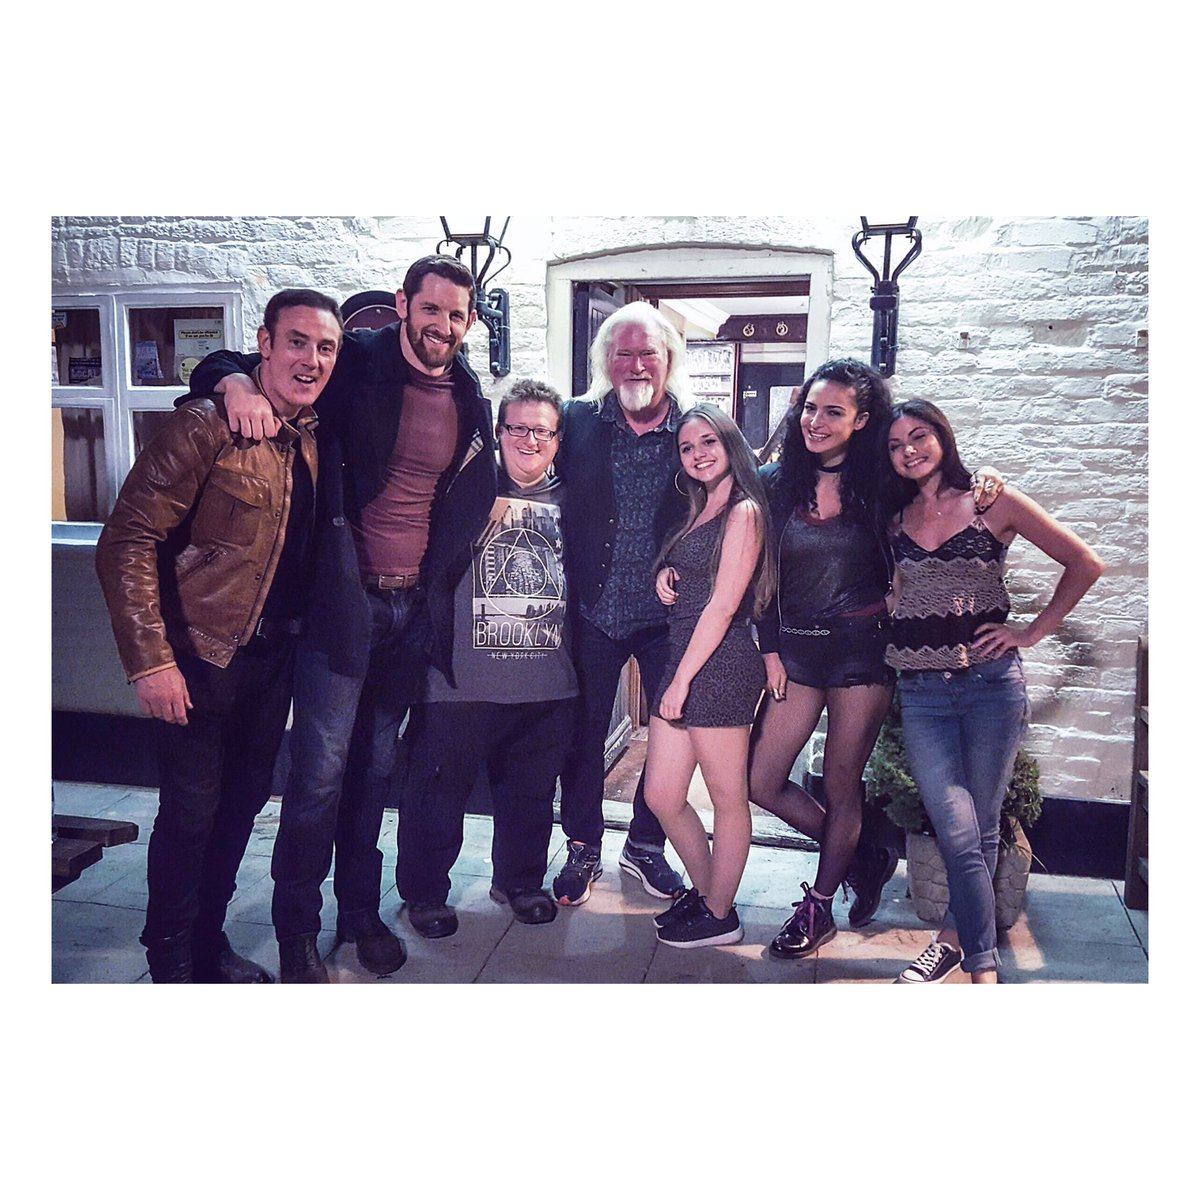 Love this shot of some of the cast of @vengeancefilmuk simply awesome people! (photo stolen from @BryanLarkin